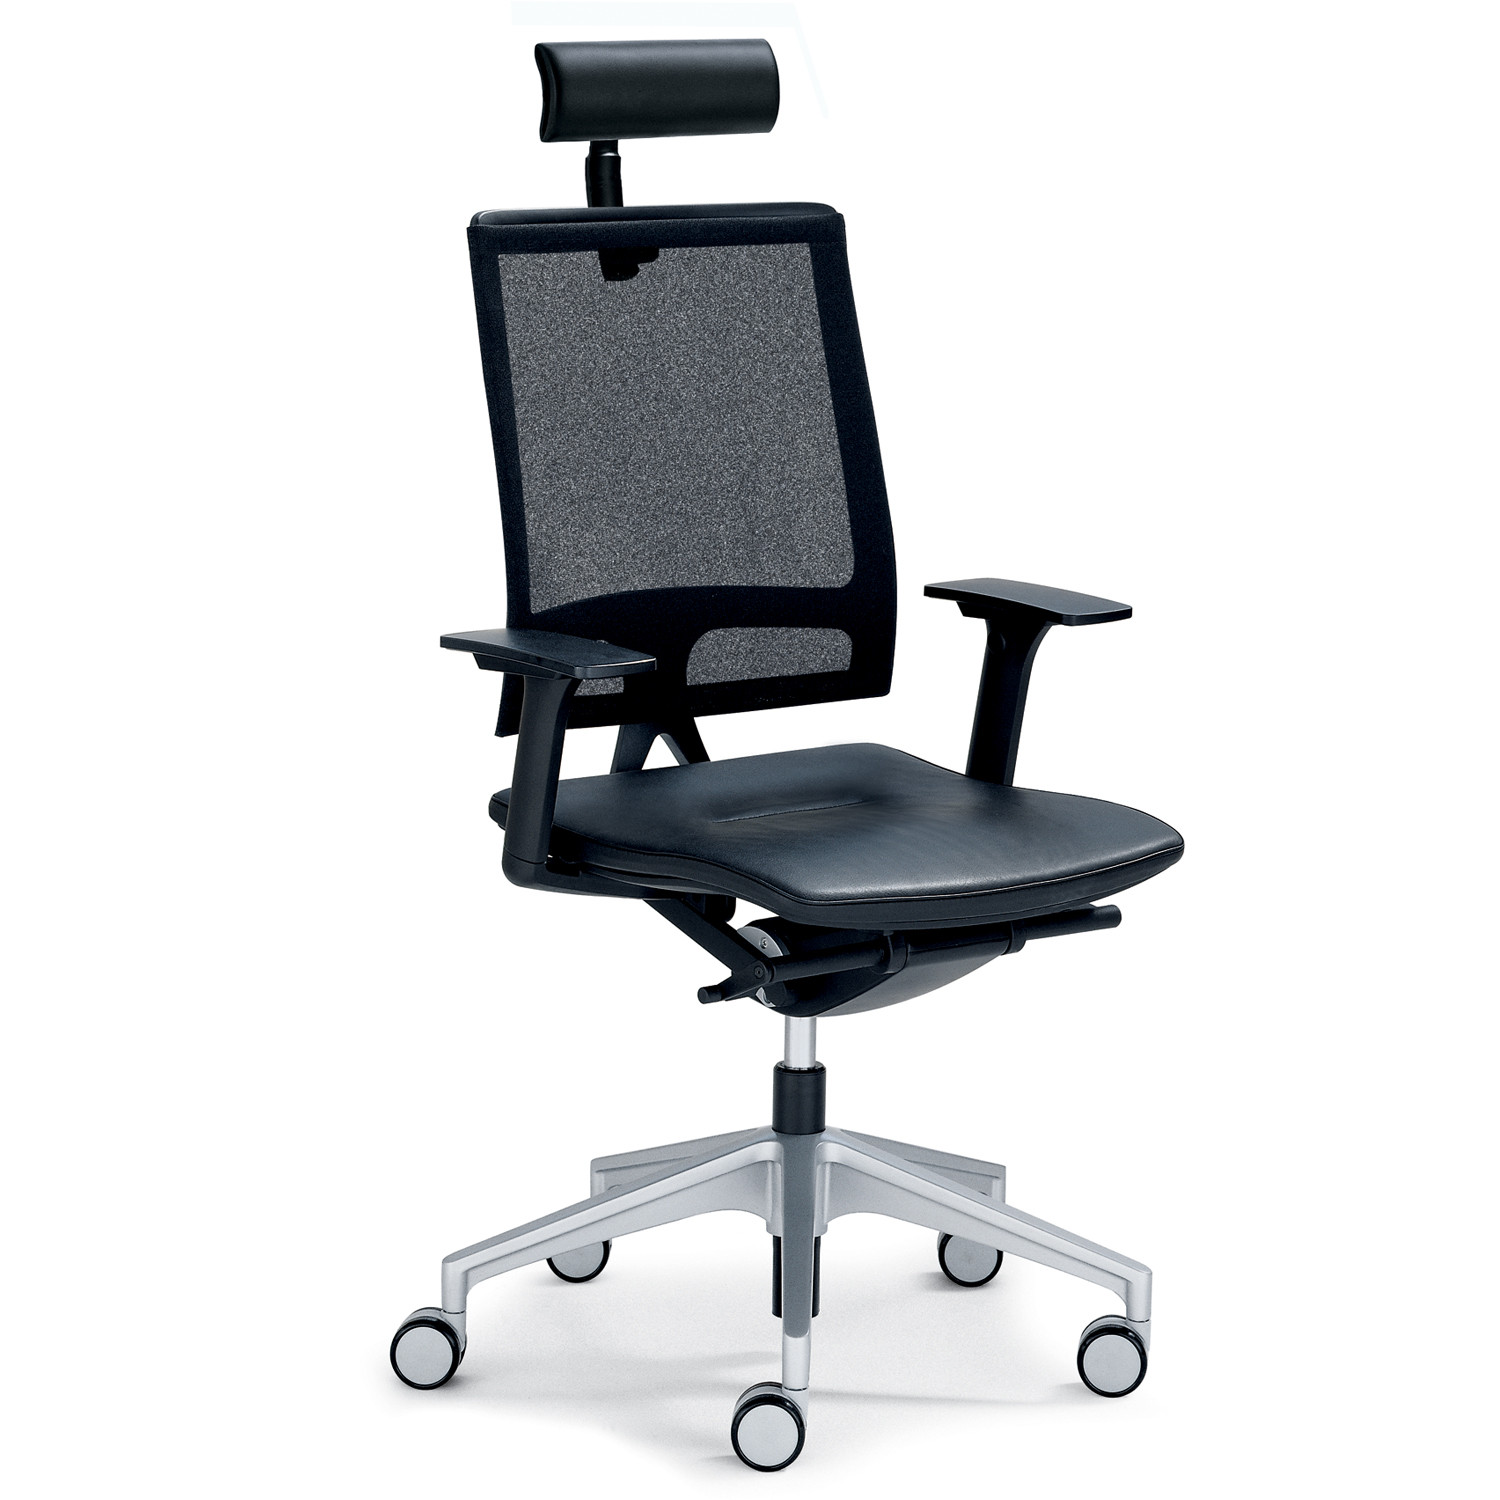 Open Mind Mesh Back Chair with headrest